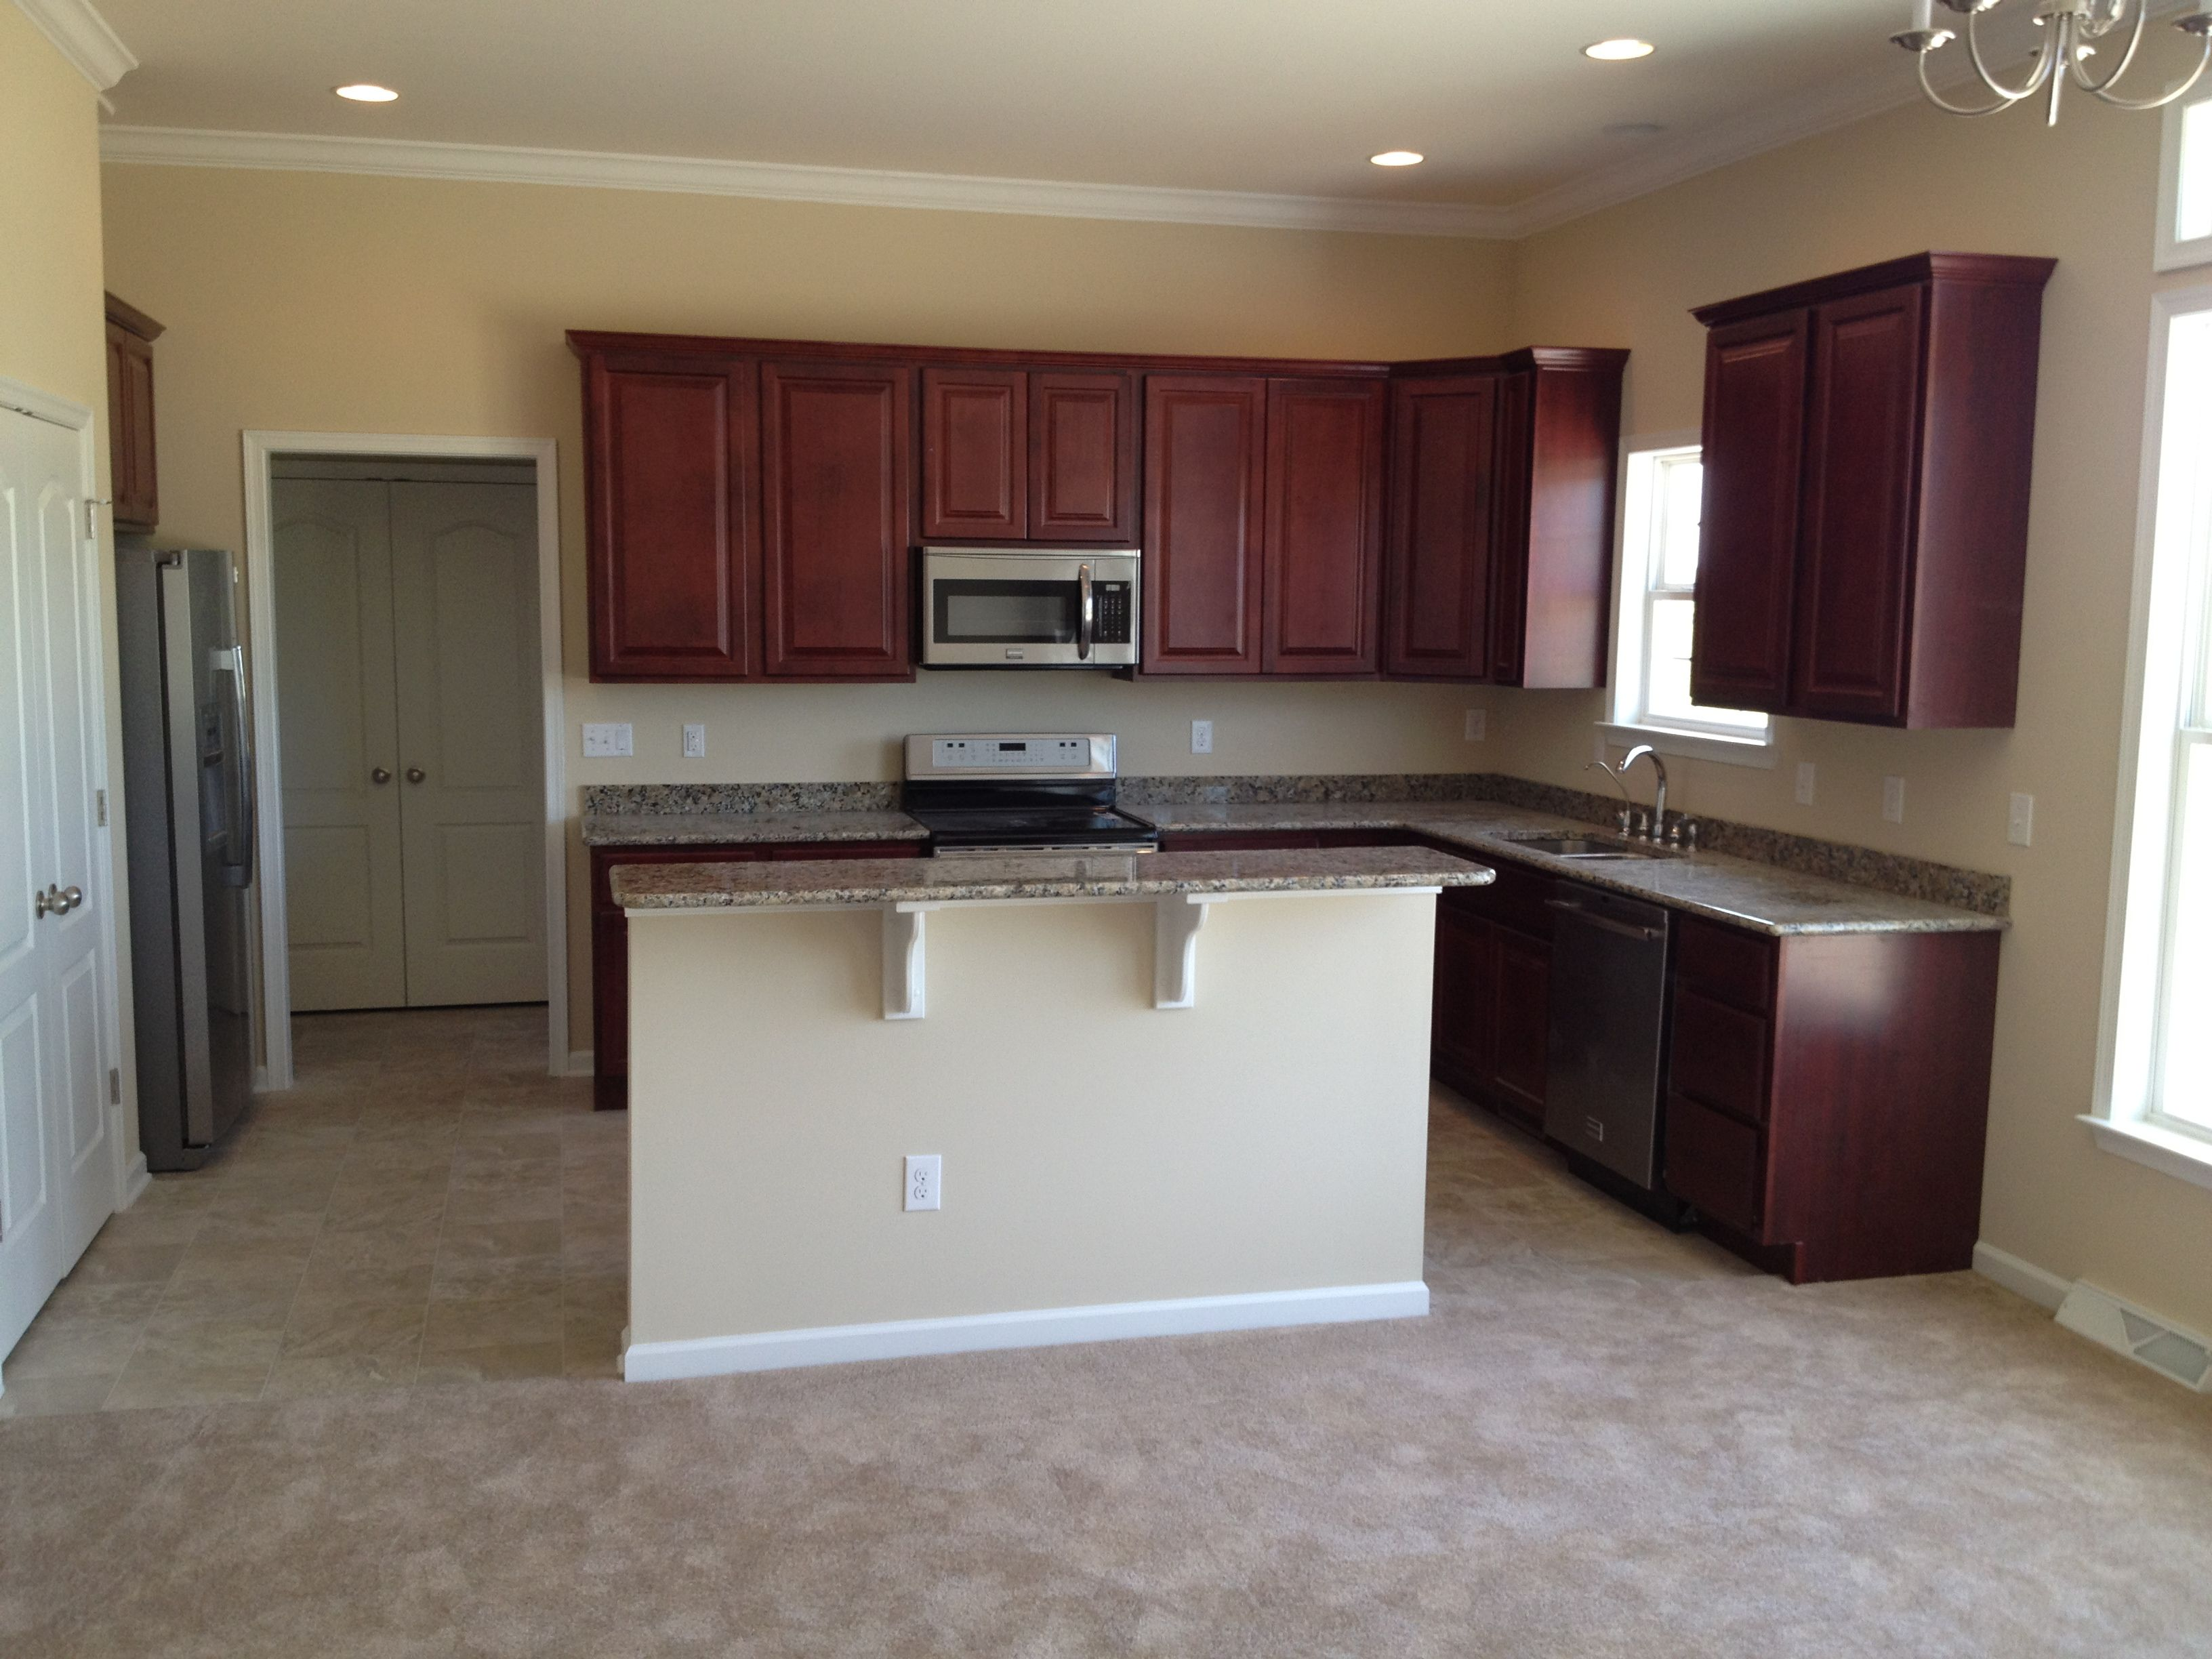 Kitchen featured in The Livingston By Ashburn Homes in Dover, DE